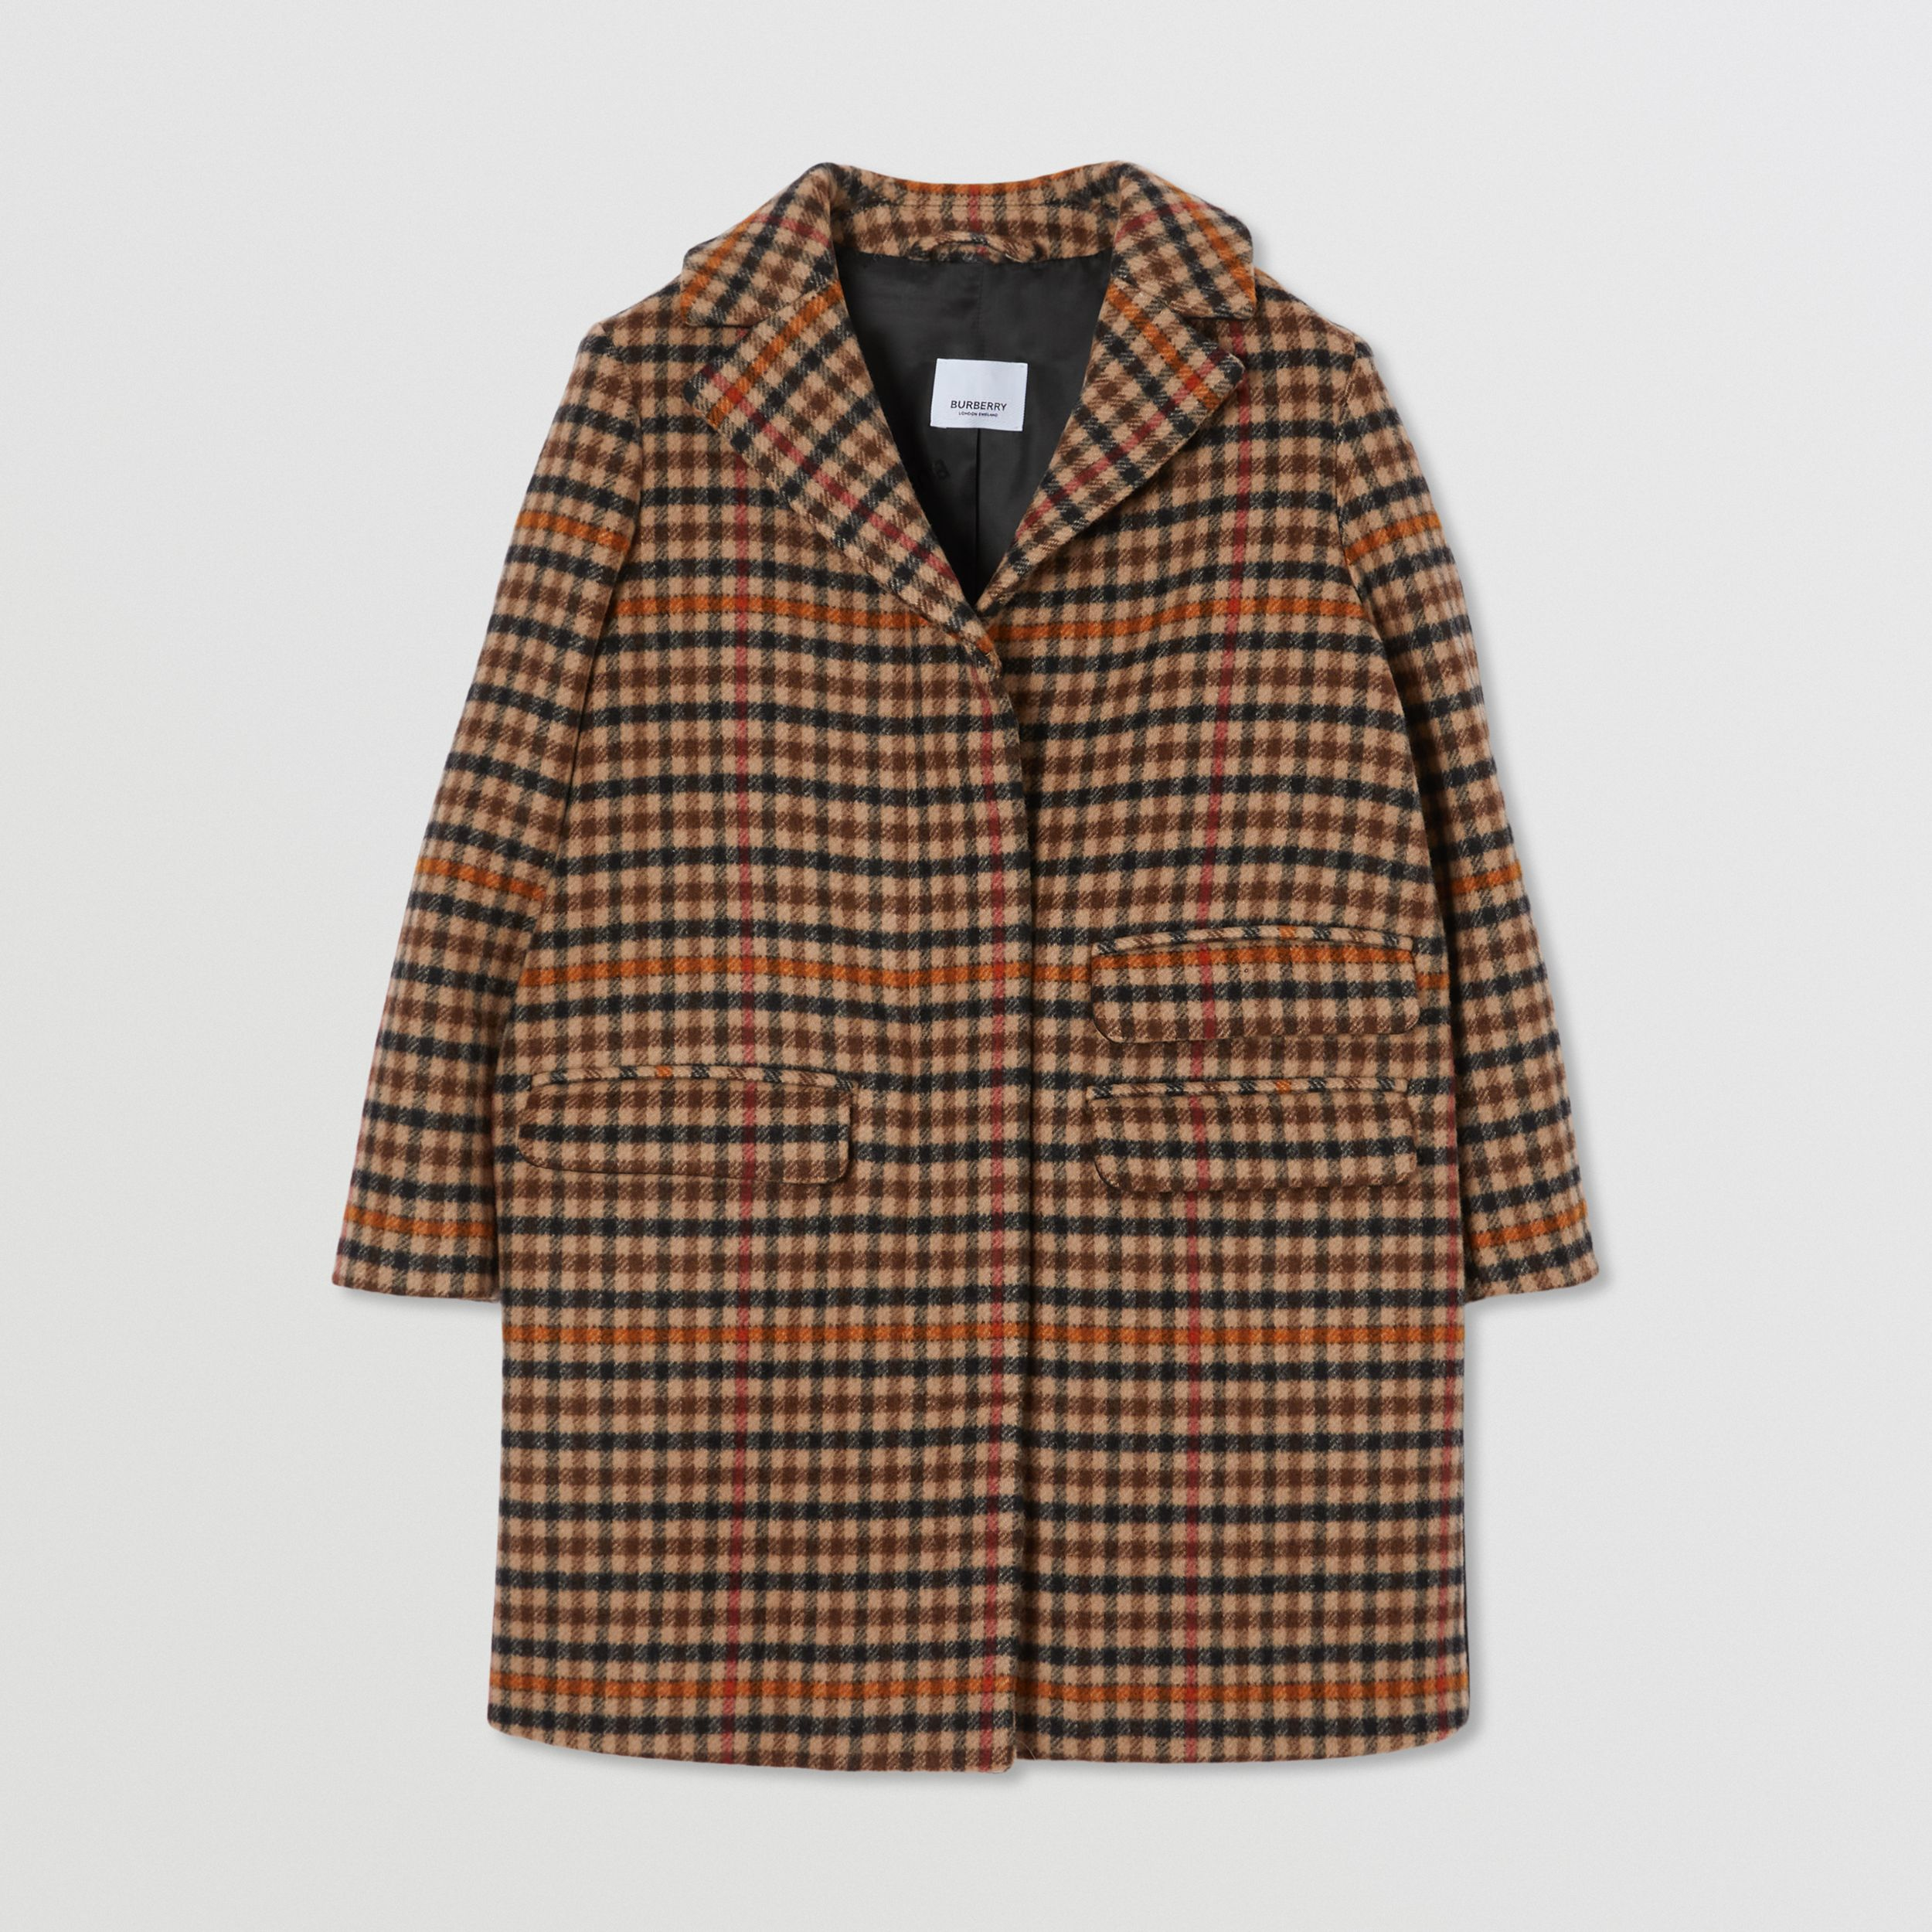 Embroidered Monogram Motif Check Wool Tailored Coat in Camel | Burberry - 1